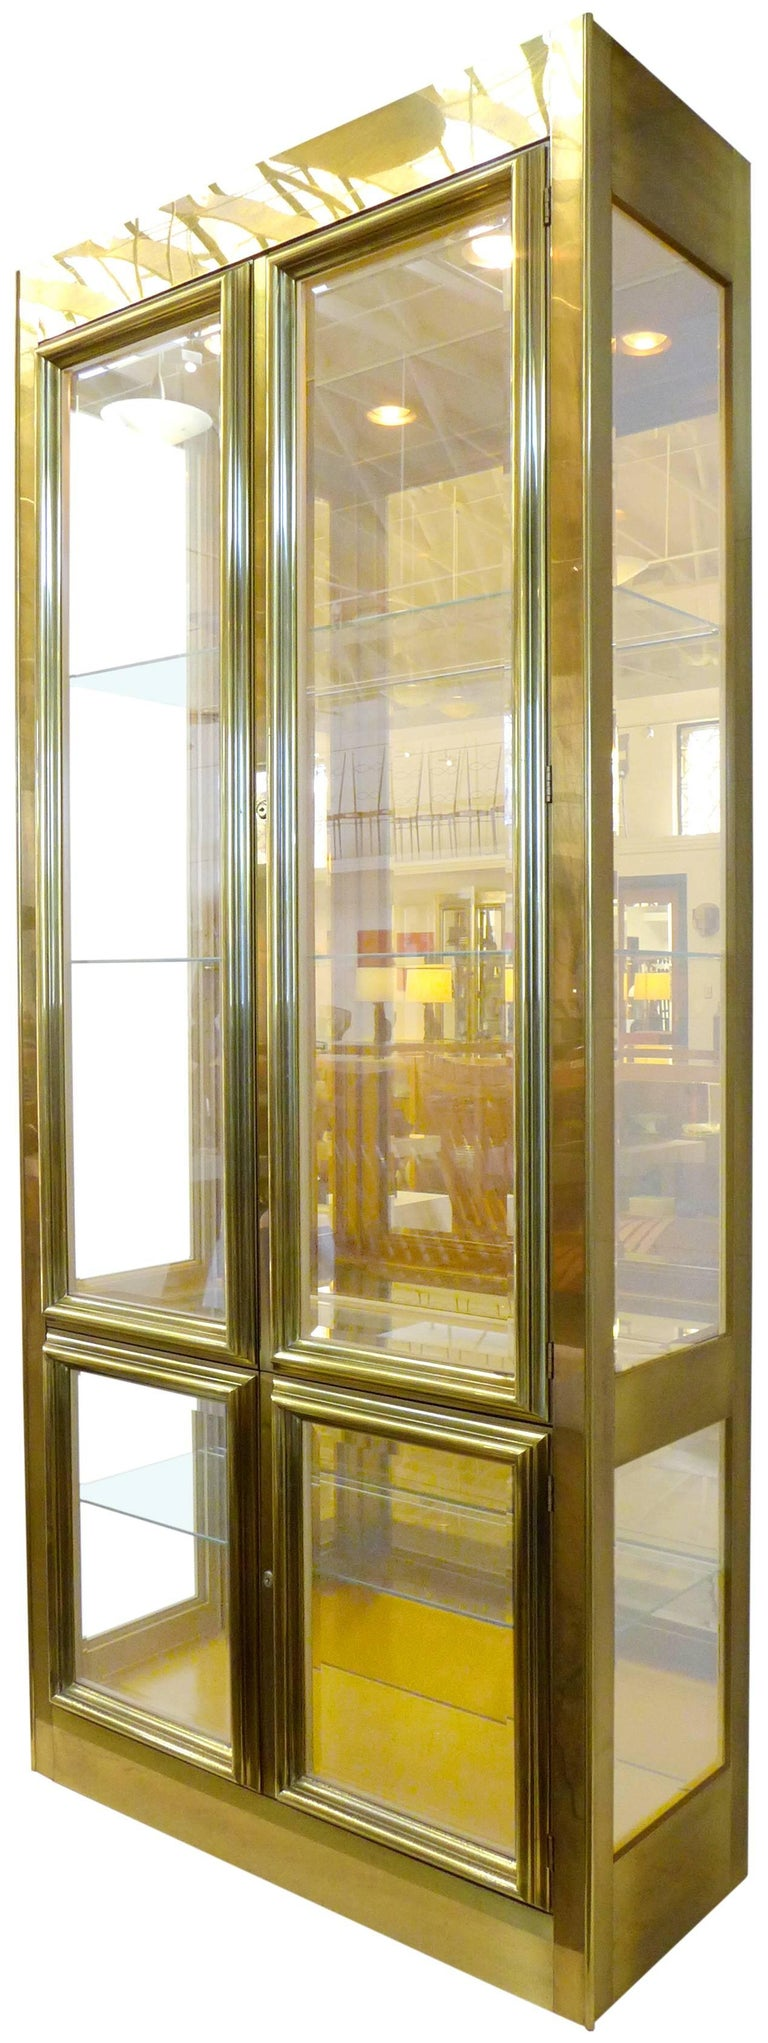 Brass-Clad Vitrine by Mastercraft 3